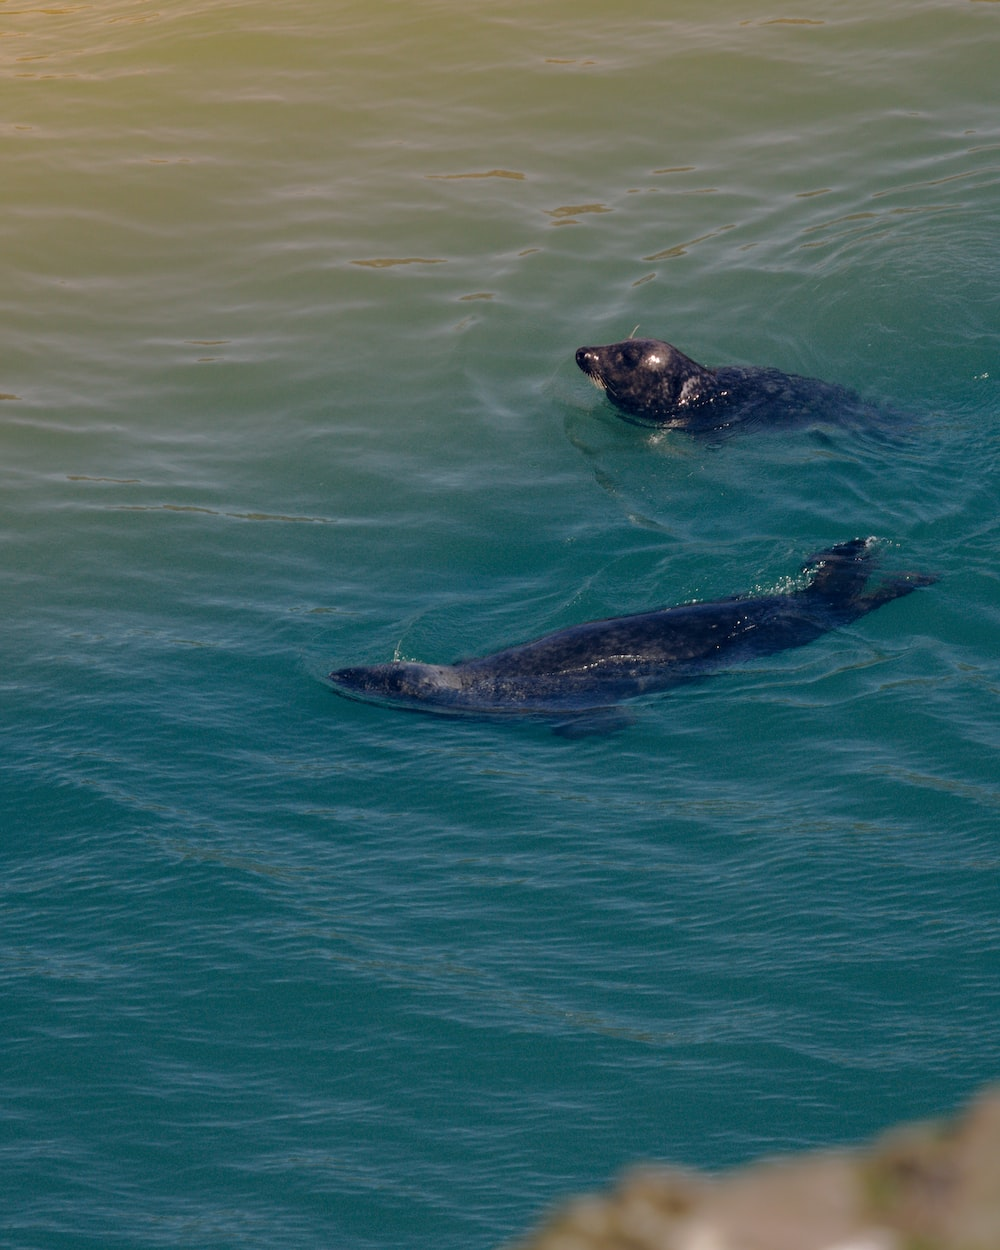 two earless seals swimming on body of water during daytime